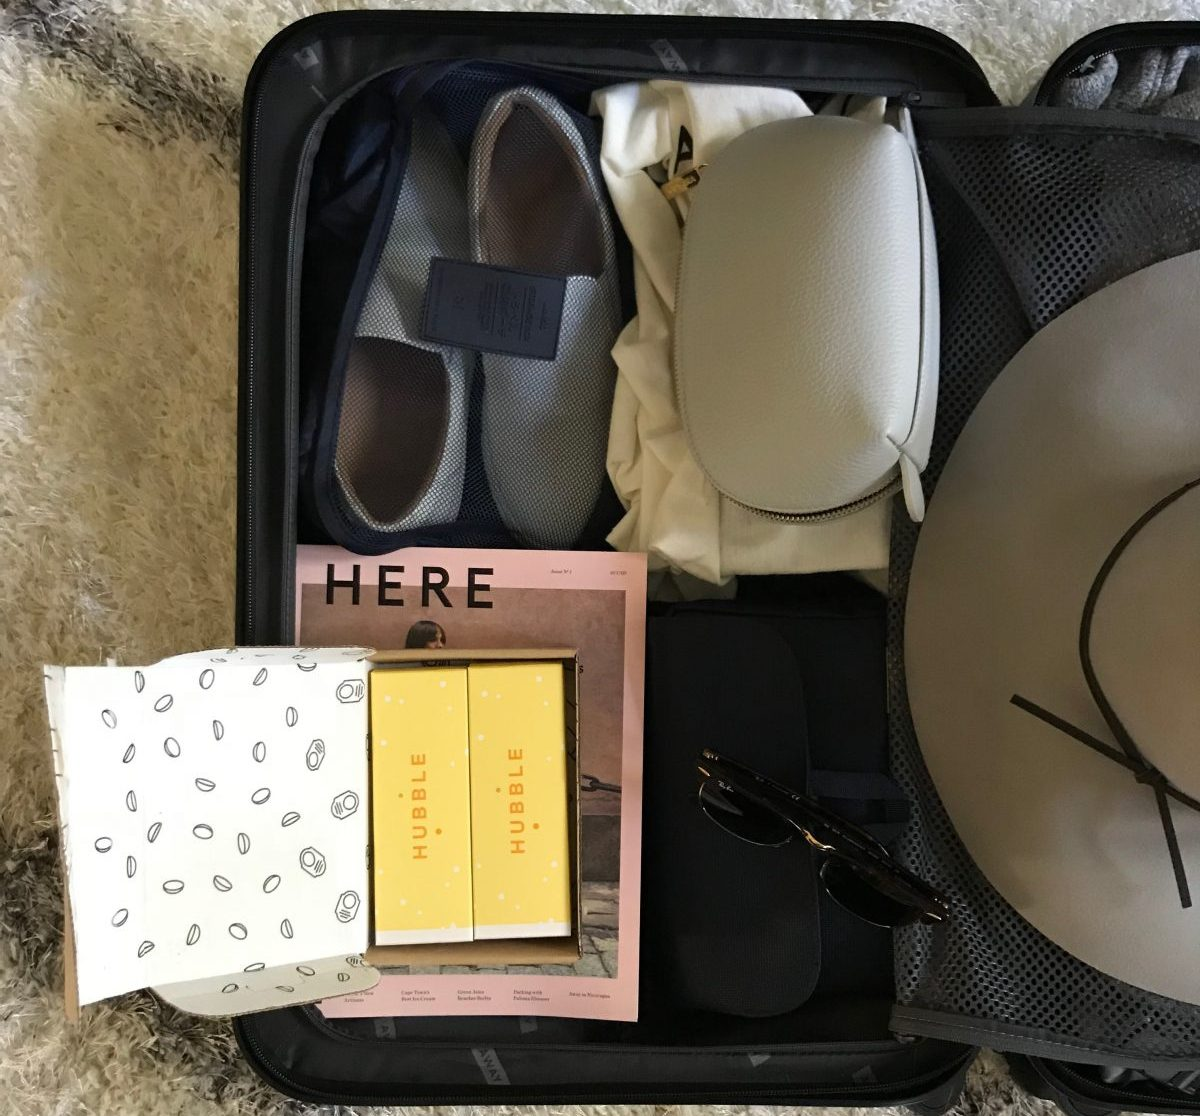 Black luggage packed with travel items